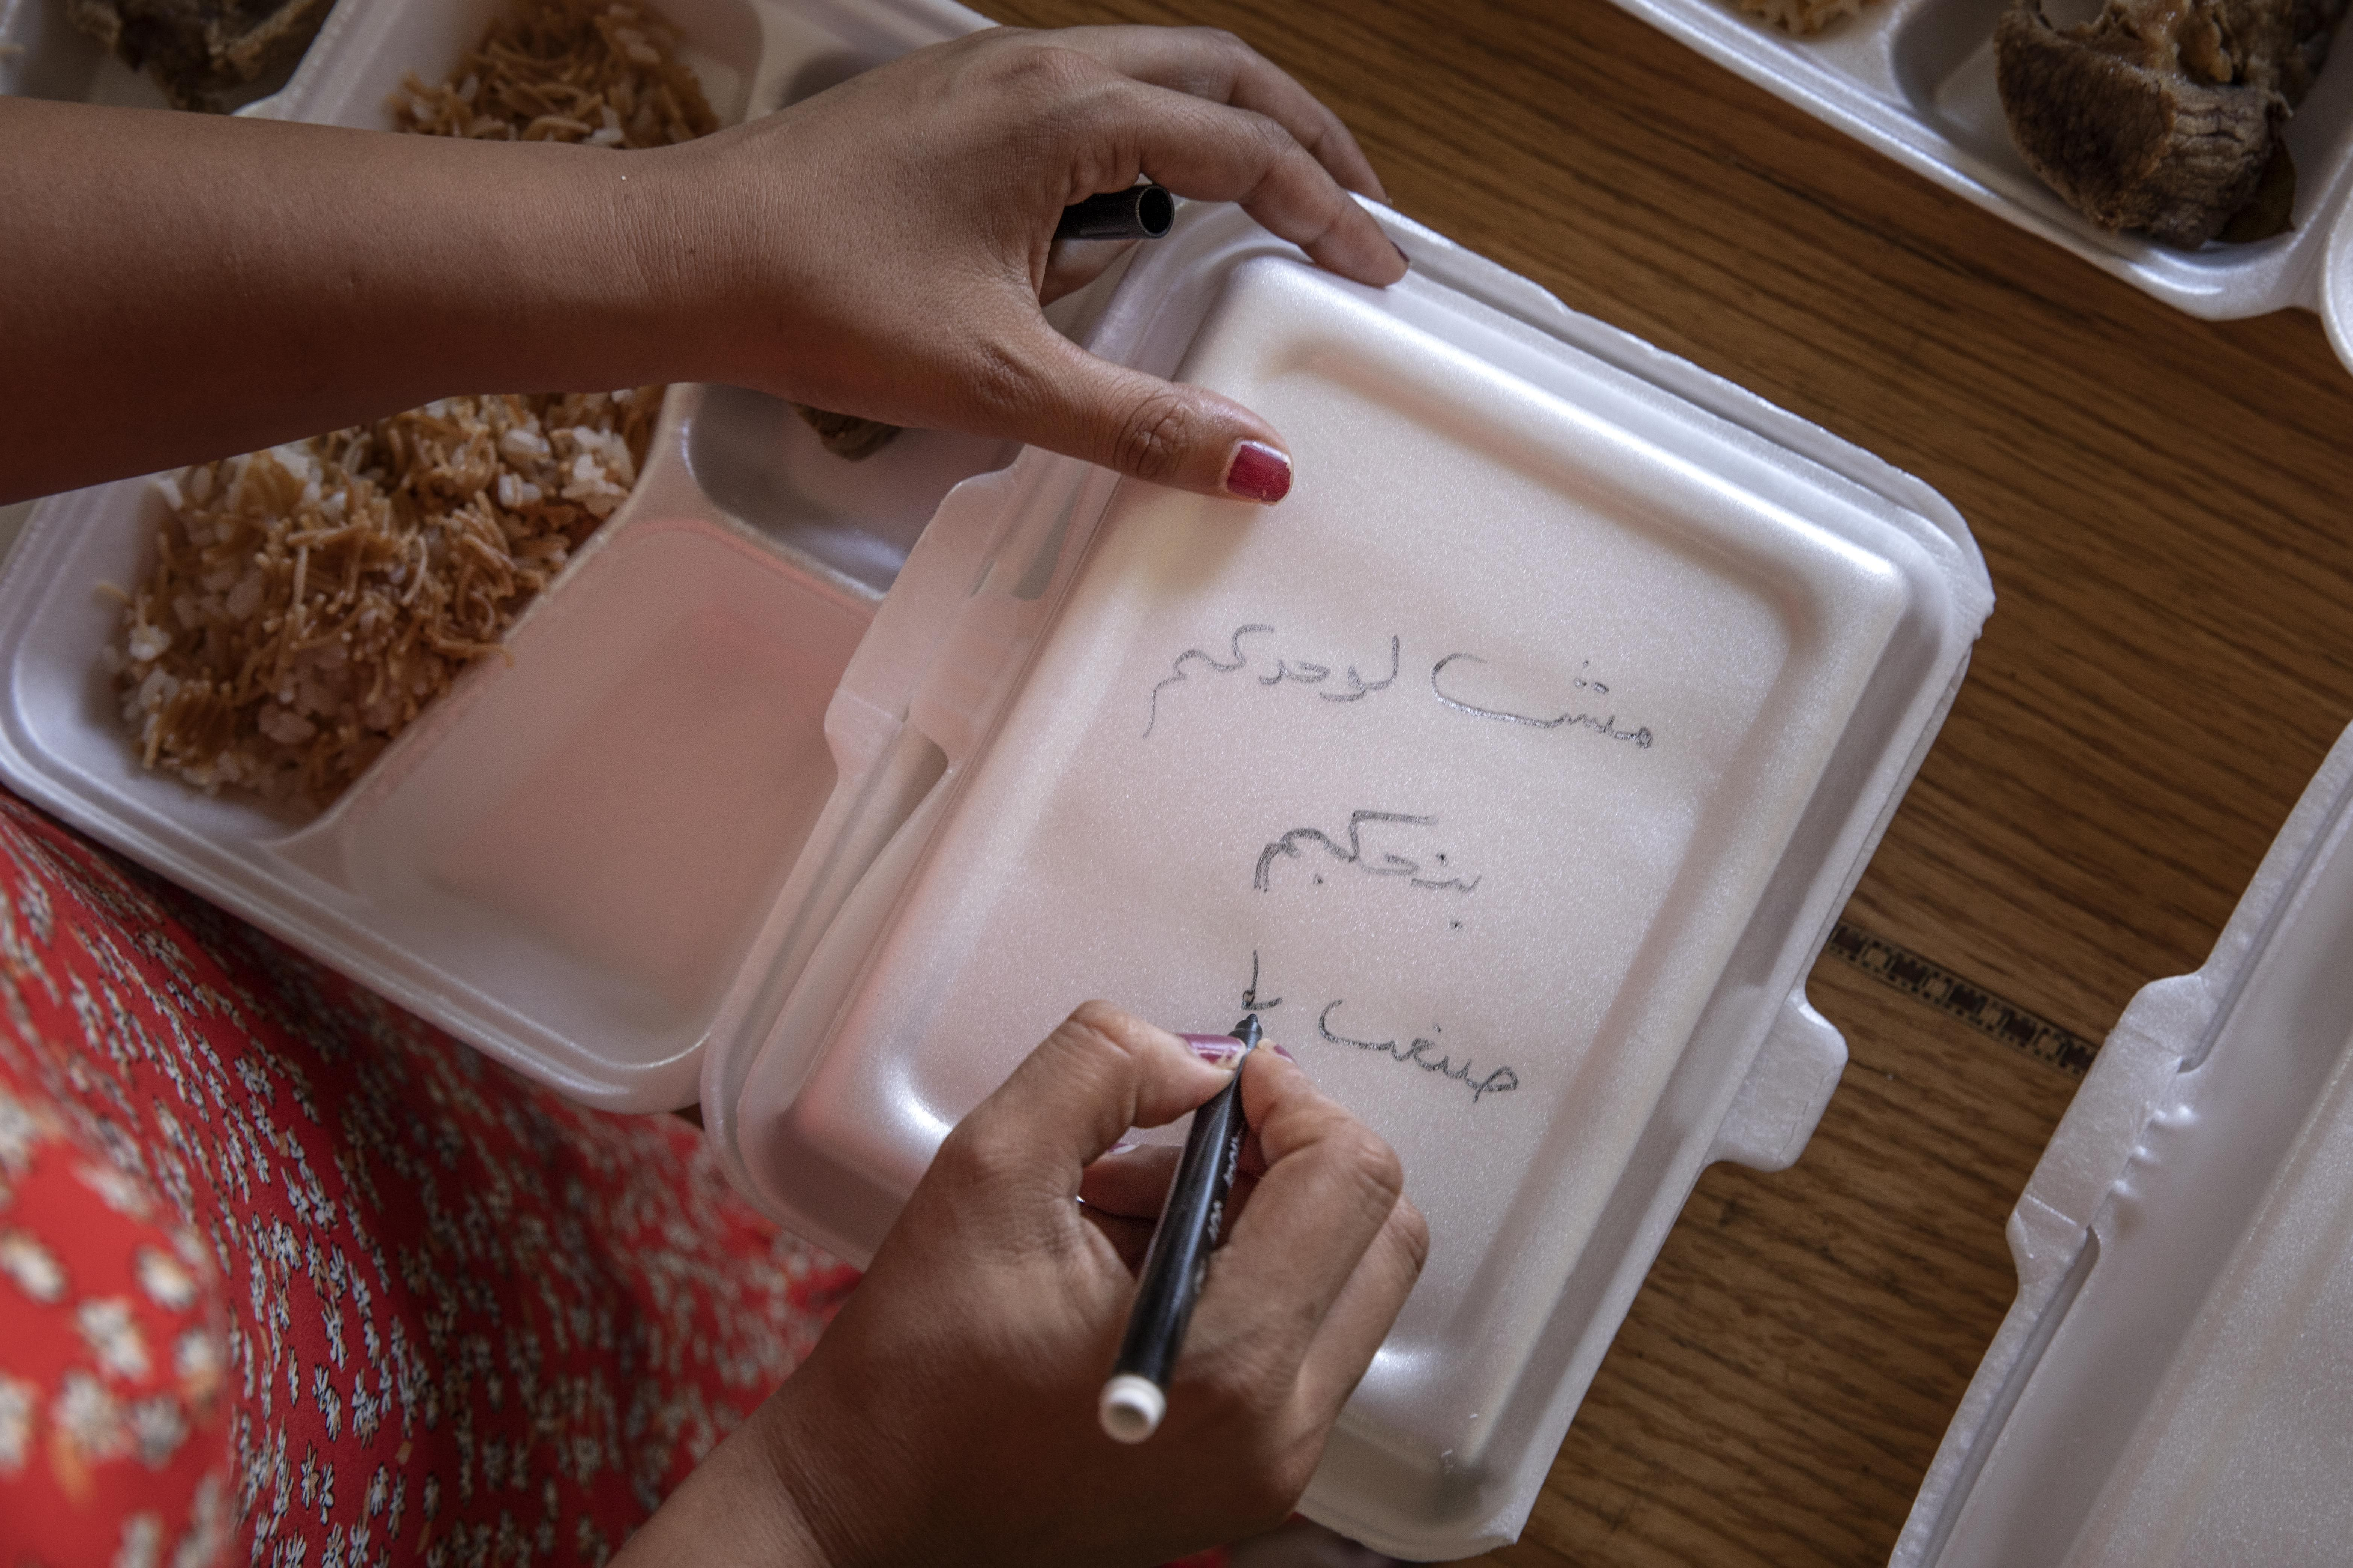 """Basma Mostafa, a 30-year-old journalist who founded an initiative that sends freshly home cooked meals to quarantined coronavirus patients, writes in Arabic, """"you are not alone, we love you,"""" on a box filled with food at a friend's apartment, in Cairo, Egypt, Saturday, July 11, 2020 photo. Mostafa, who works with others to coordinate the volunteer effort, said she got the idea of helping out when she was going through a difficult time. """"I thought that to alleviate my suffering, I can engage with the suffering of others and feel more for them,"""" she said. (AP Photo/Nariman El-Mofty)"""